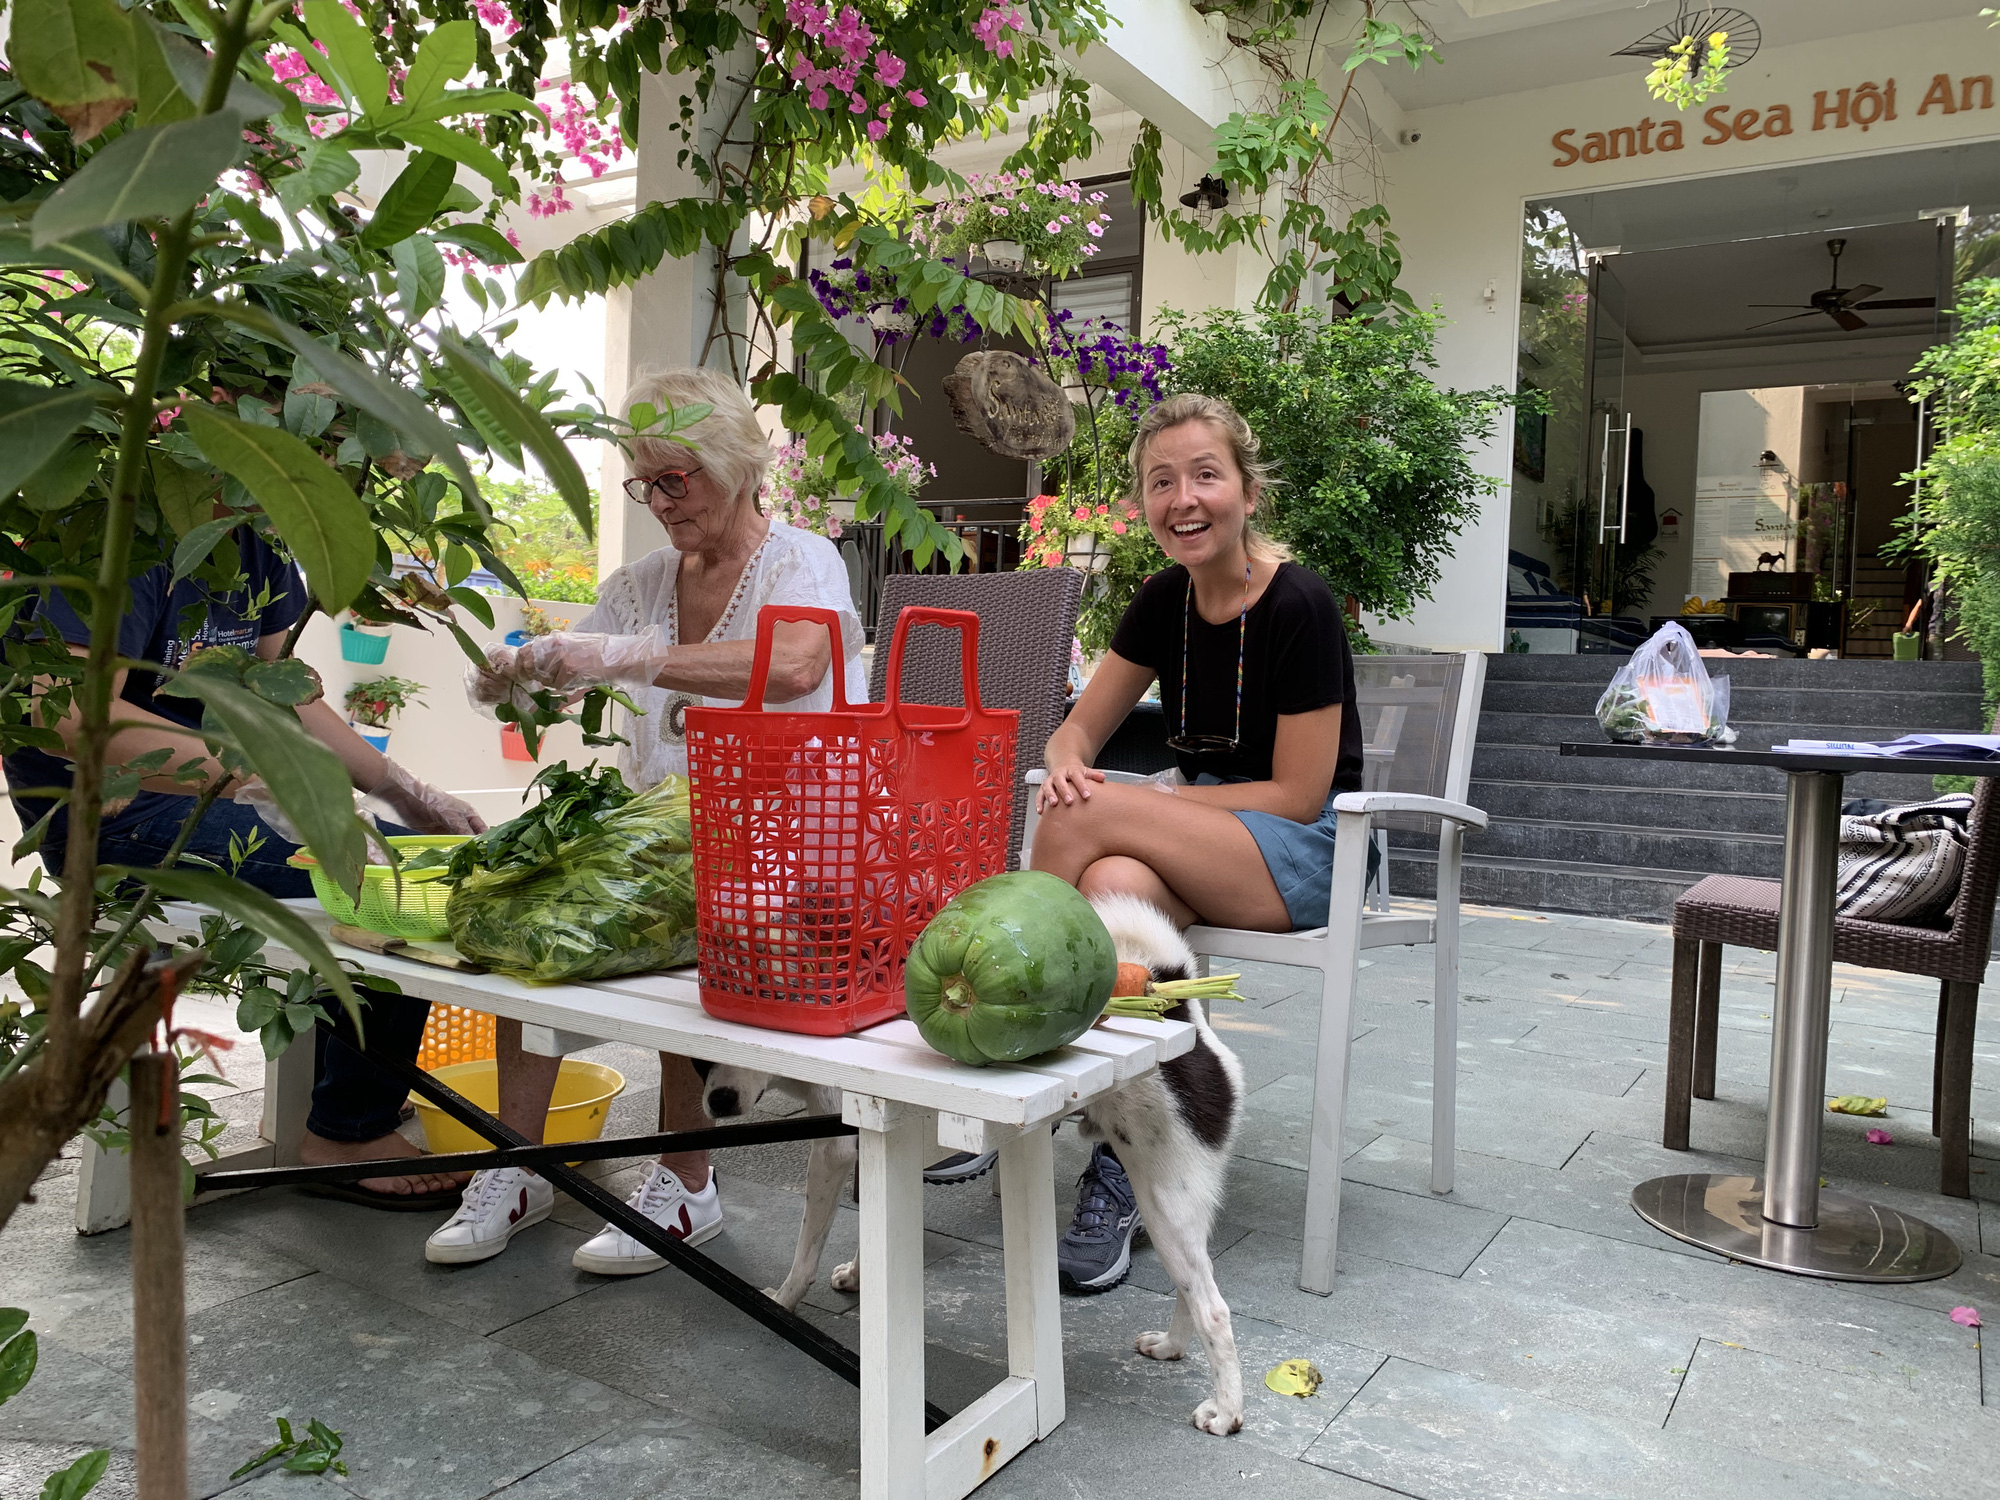 Visitors helps their accommodation owner prepare a meal in Hoi An City, Quang Nam Province, Vietnam. Photo: Quoc Viet / Tuoi Tre